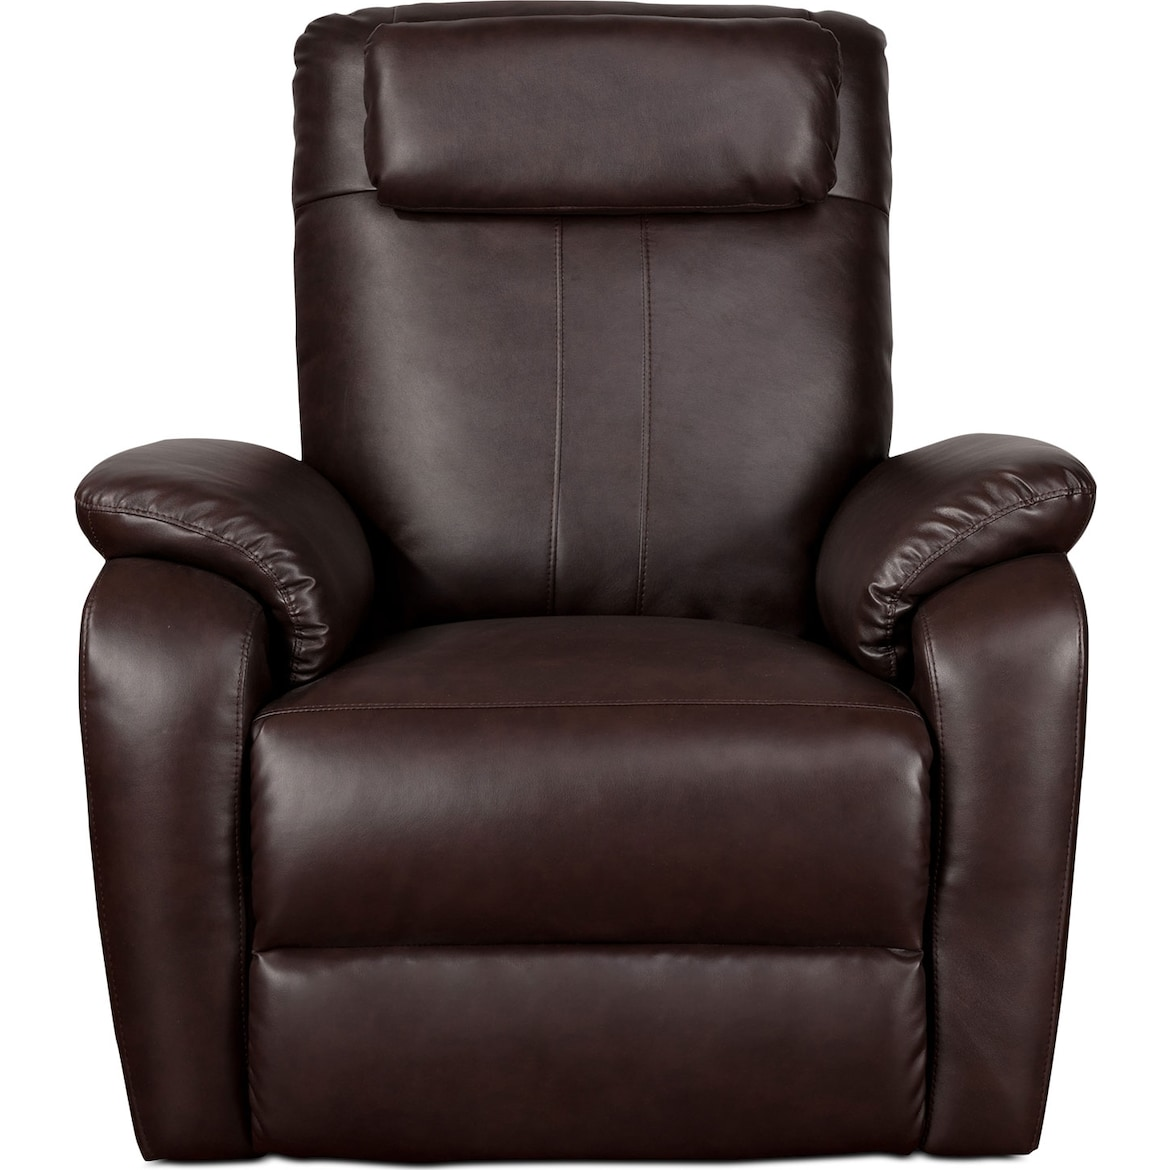 Sparta Rocker Recliner   Value City Furniture and Mattresses on Sparta Outdoor Living id=84188